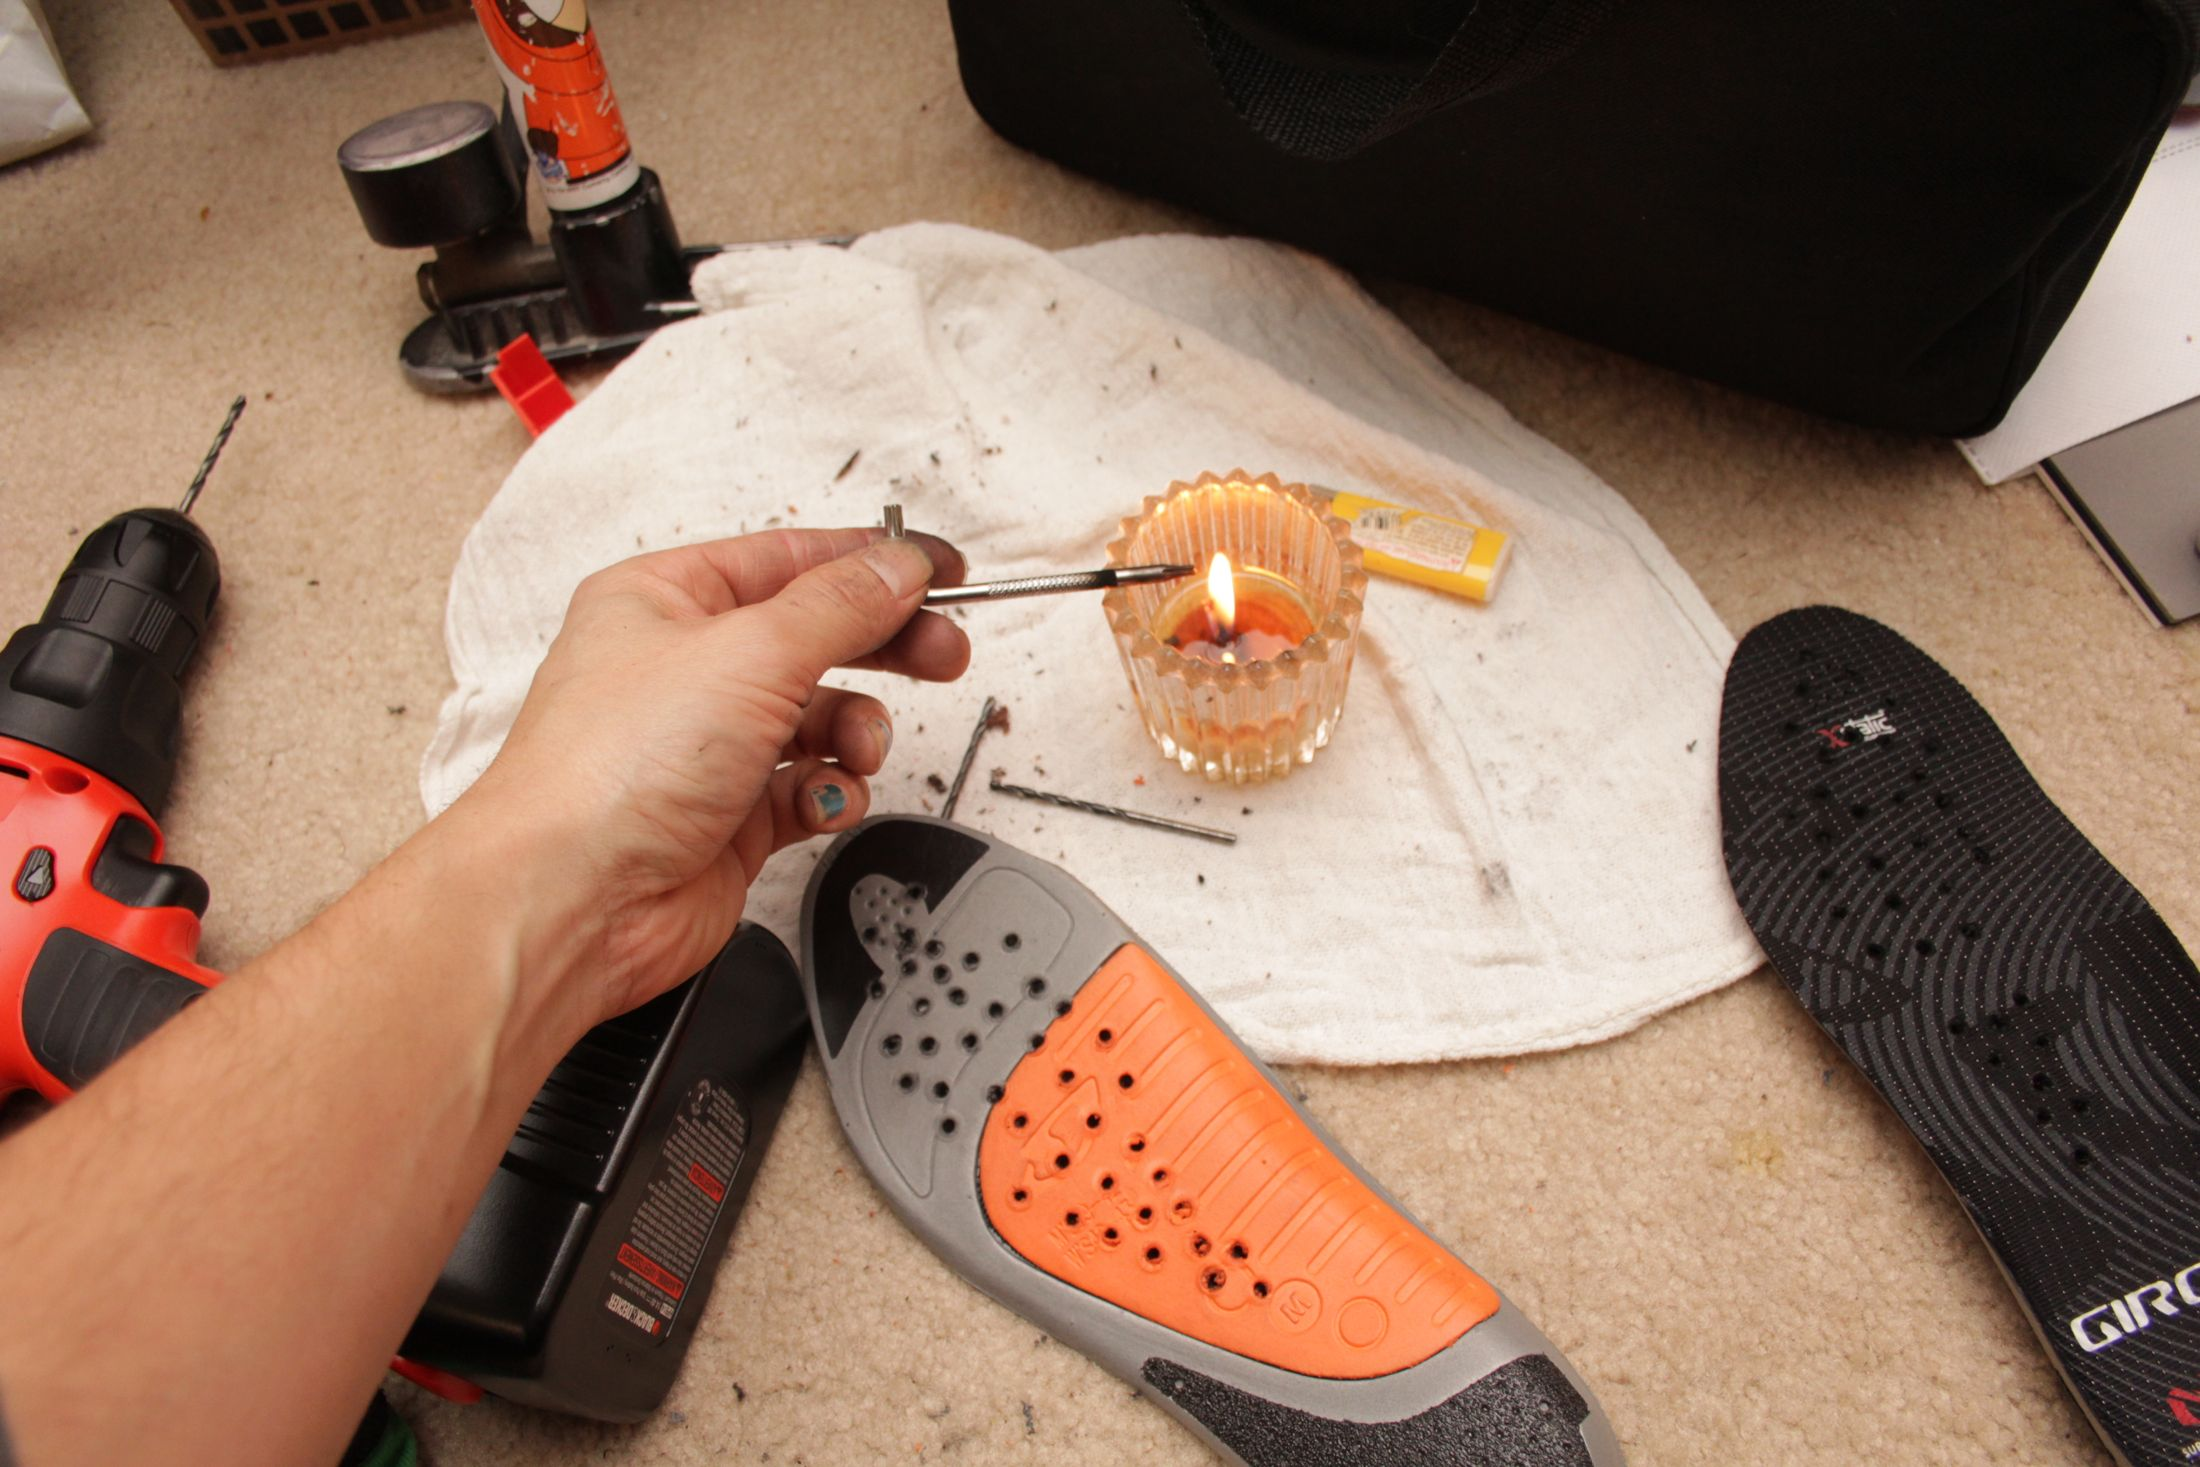 Heat boring holes into a foam insole